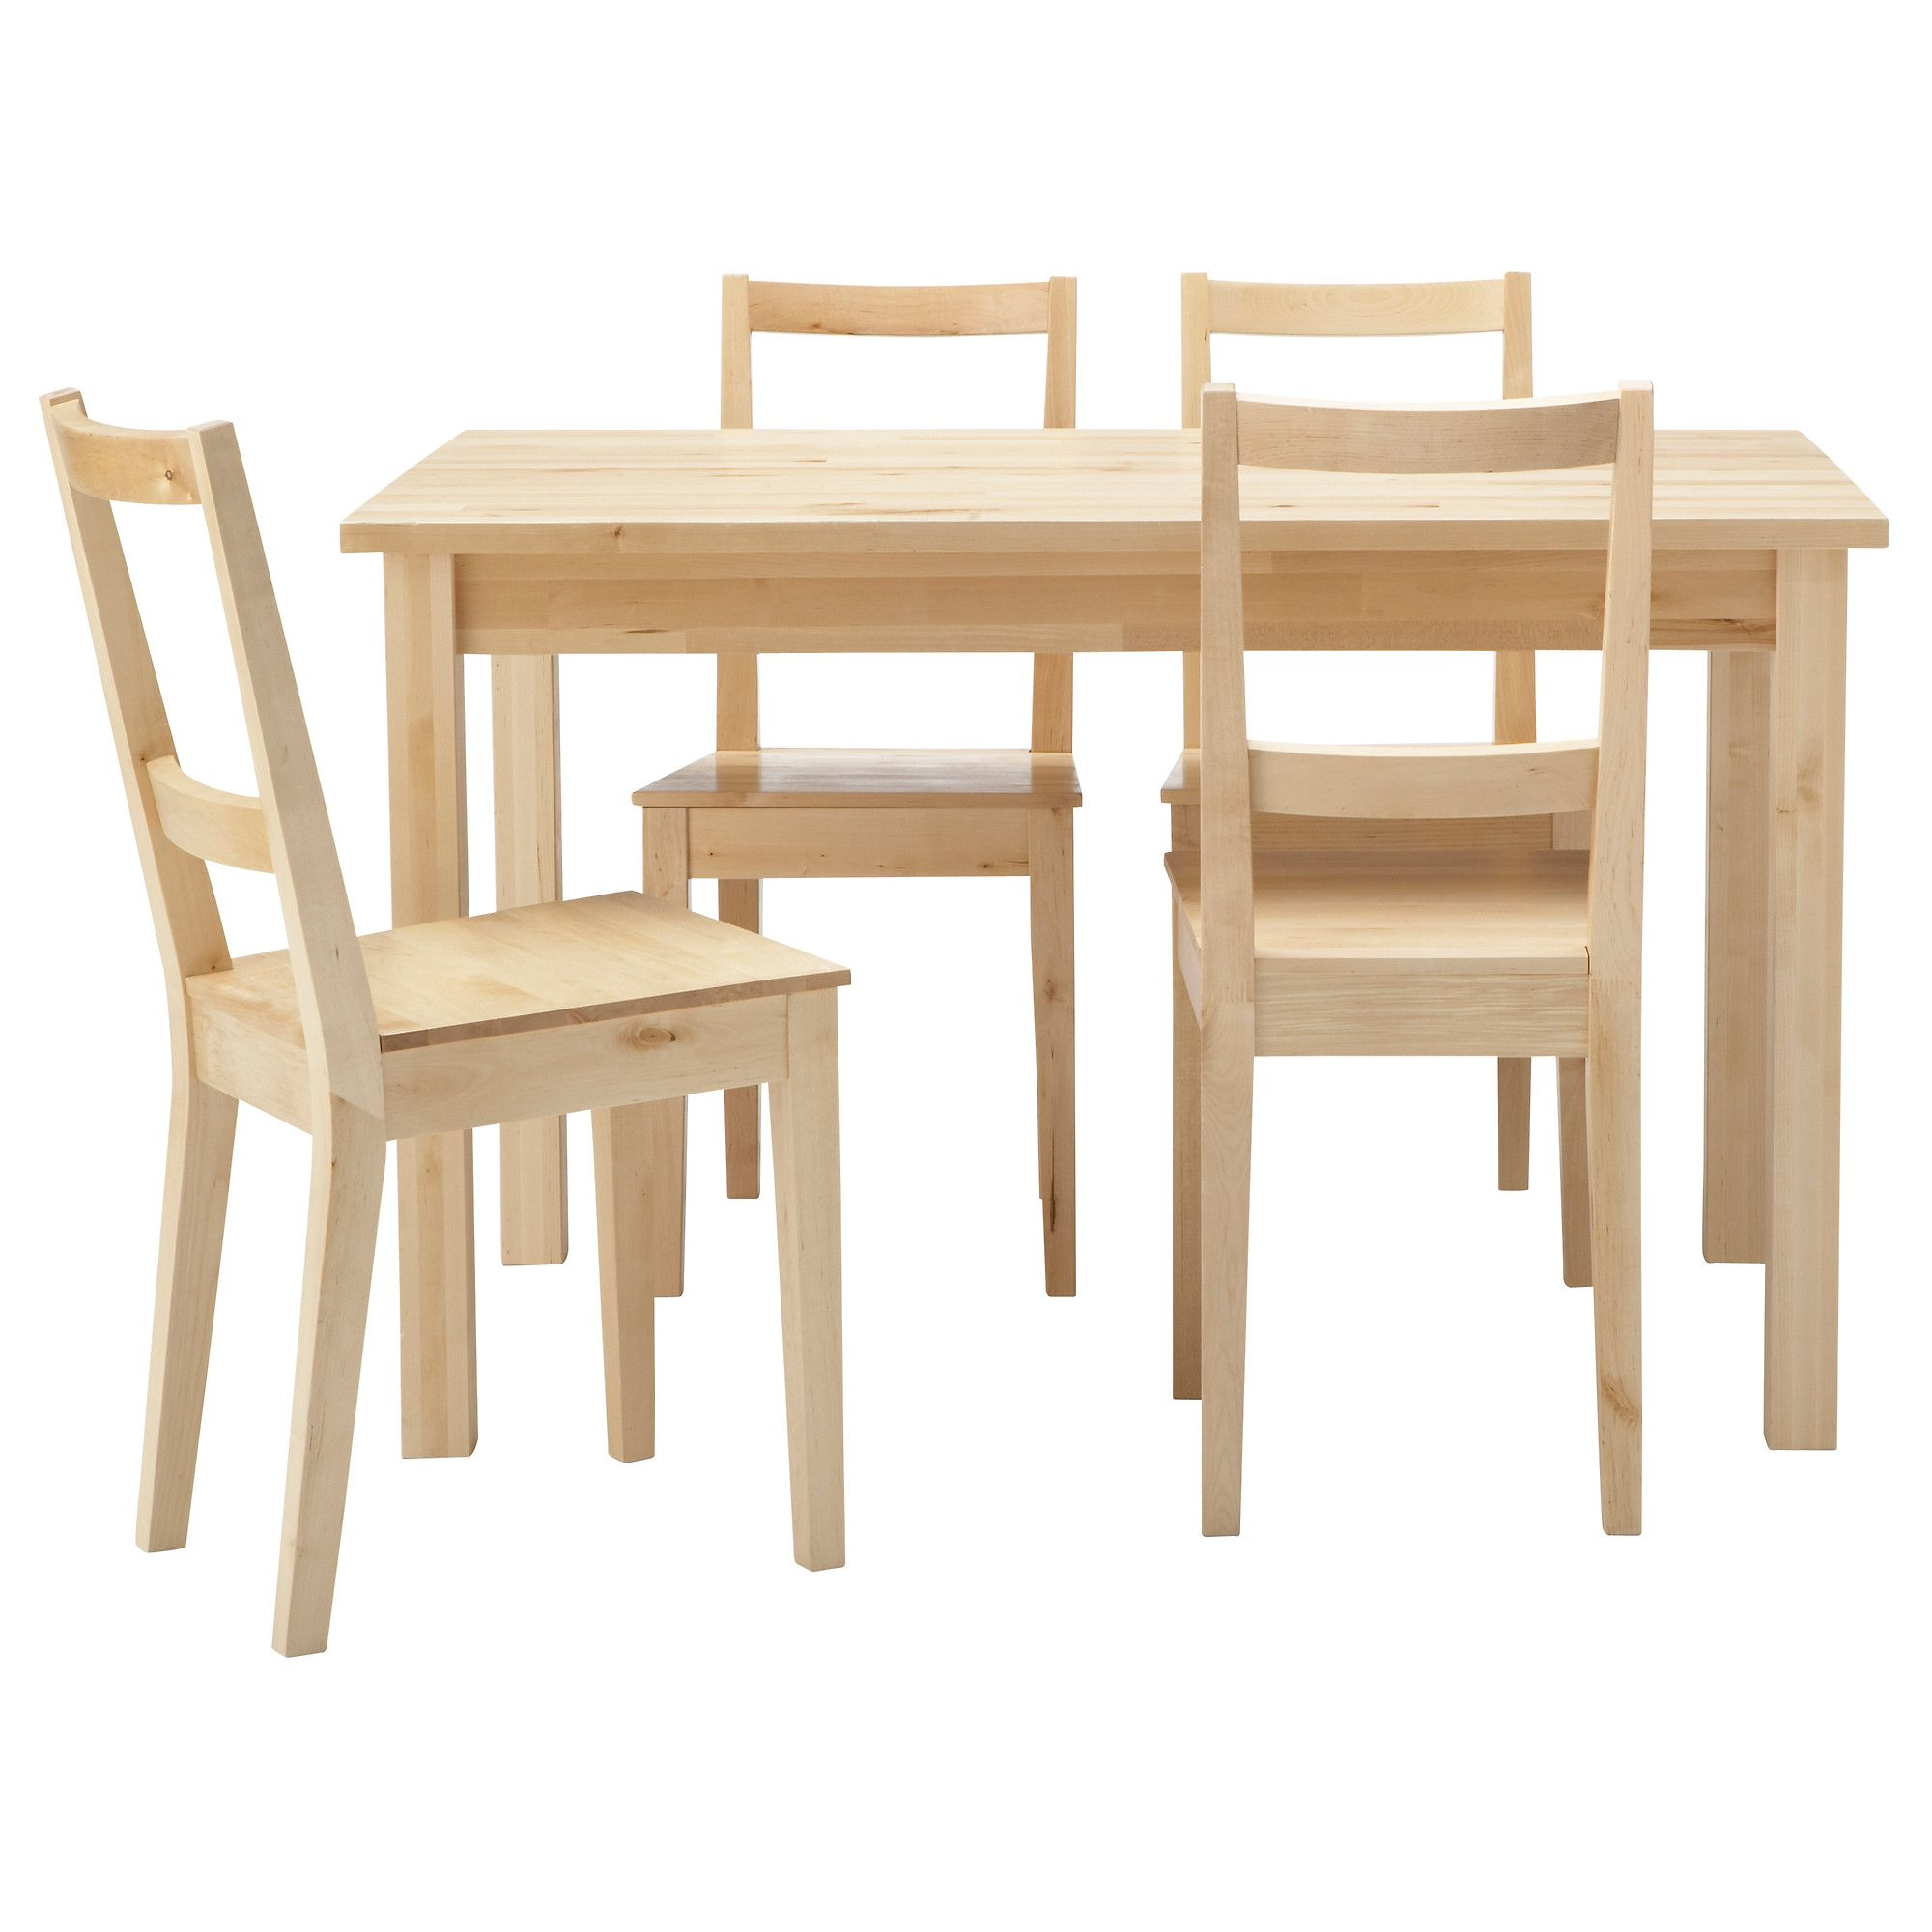 Ikea Round Table And Chairs: Charming Solid Wood Dining Table And 4 Chairs